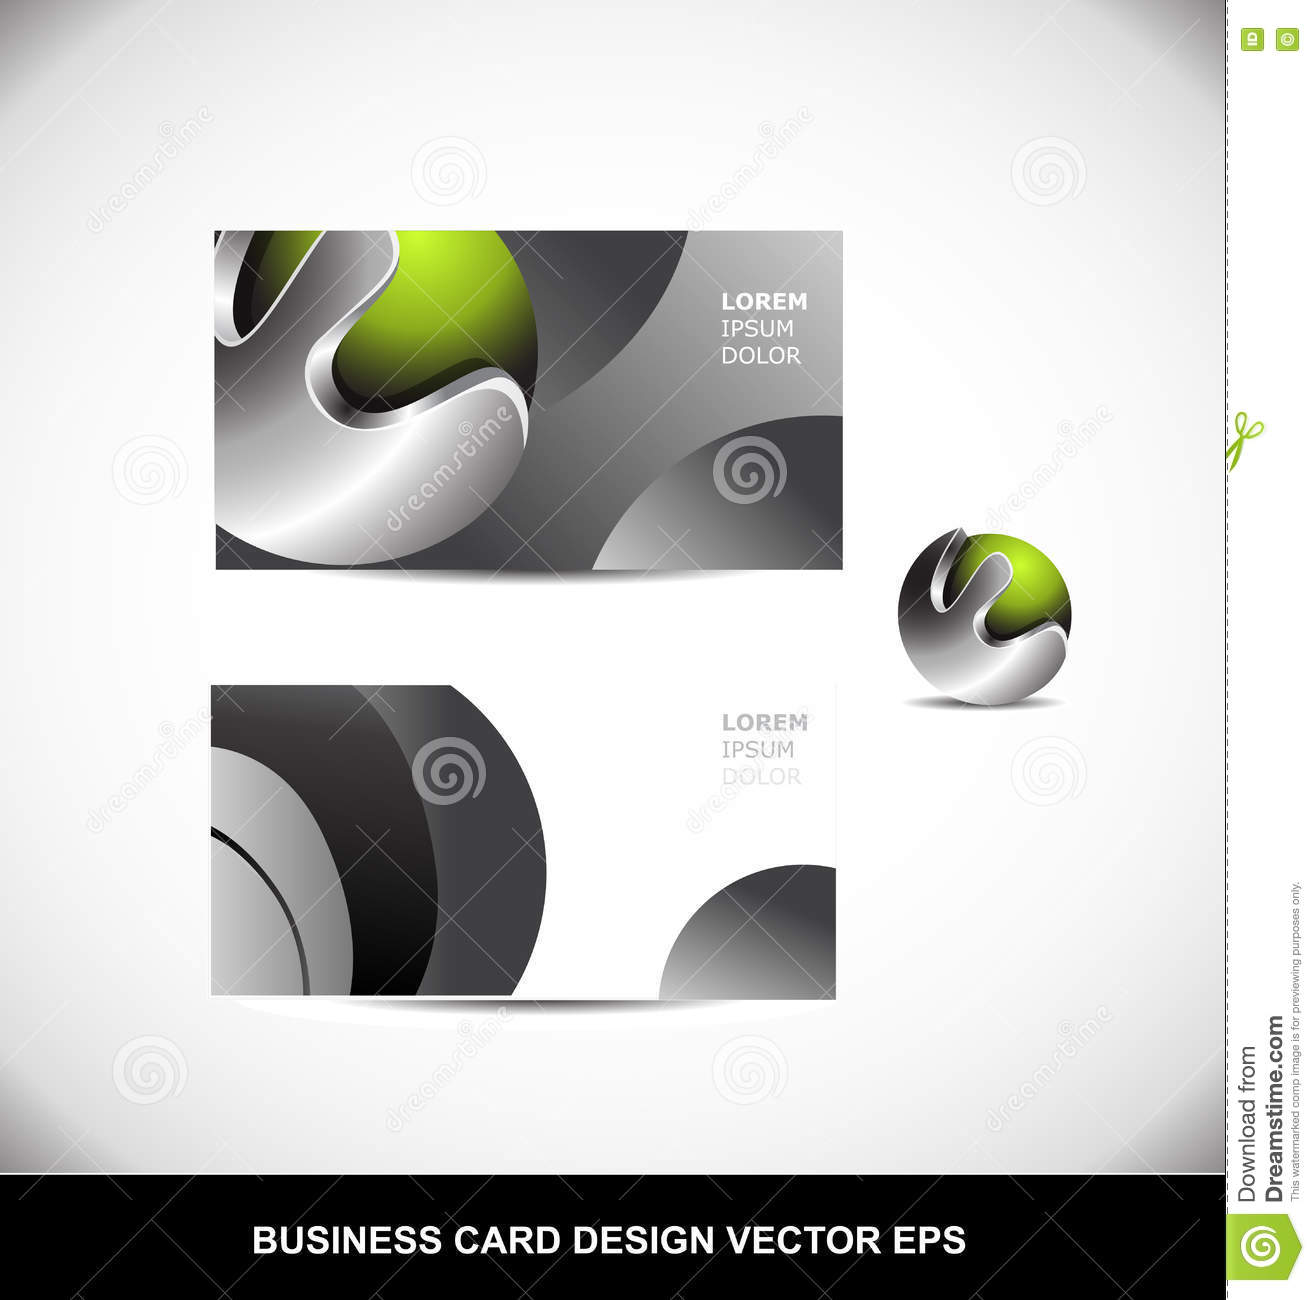 Green metal sphere business card vector design template eps stock green metal sphere business card vector design template eps reheart Images